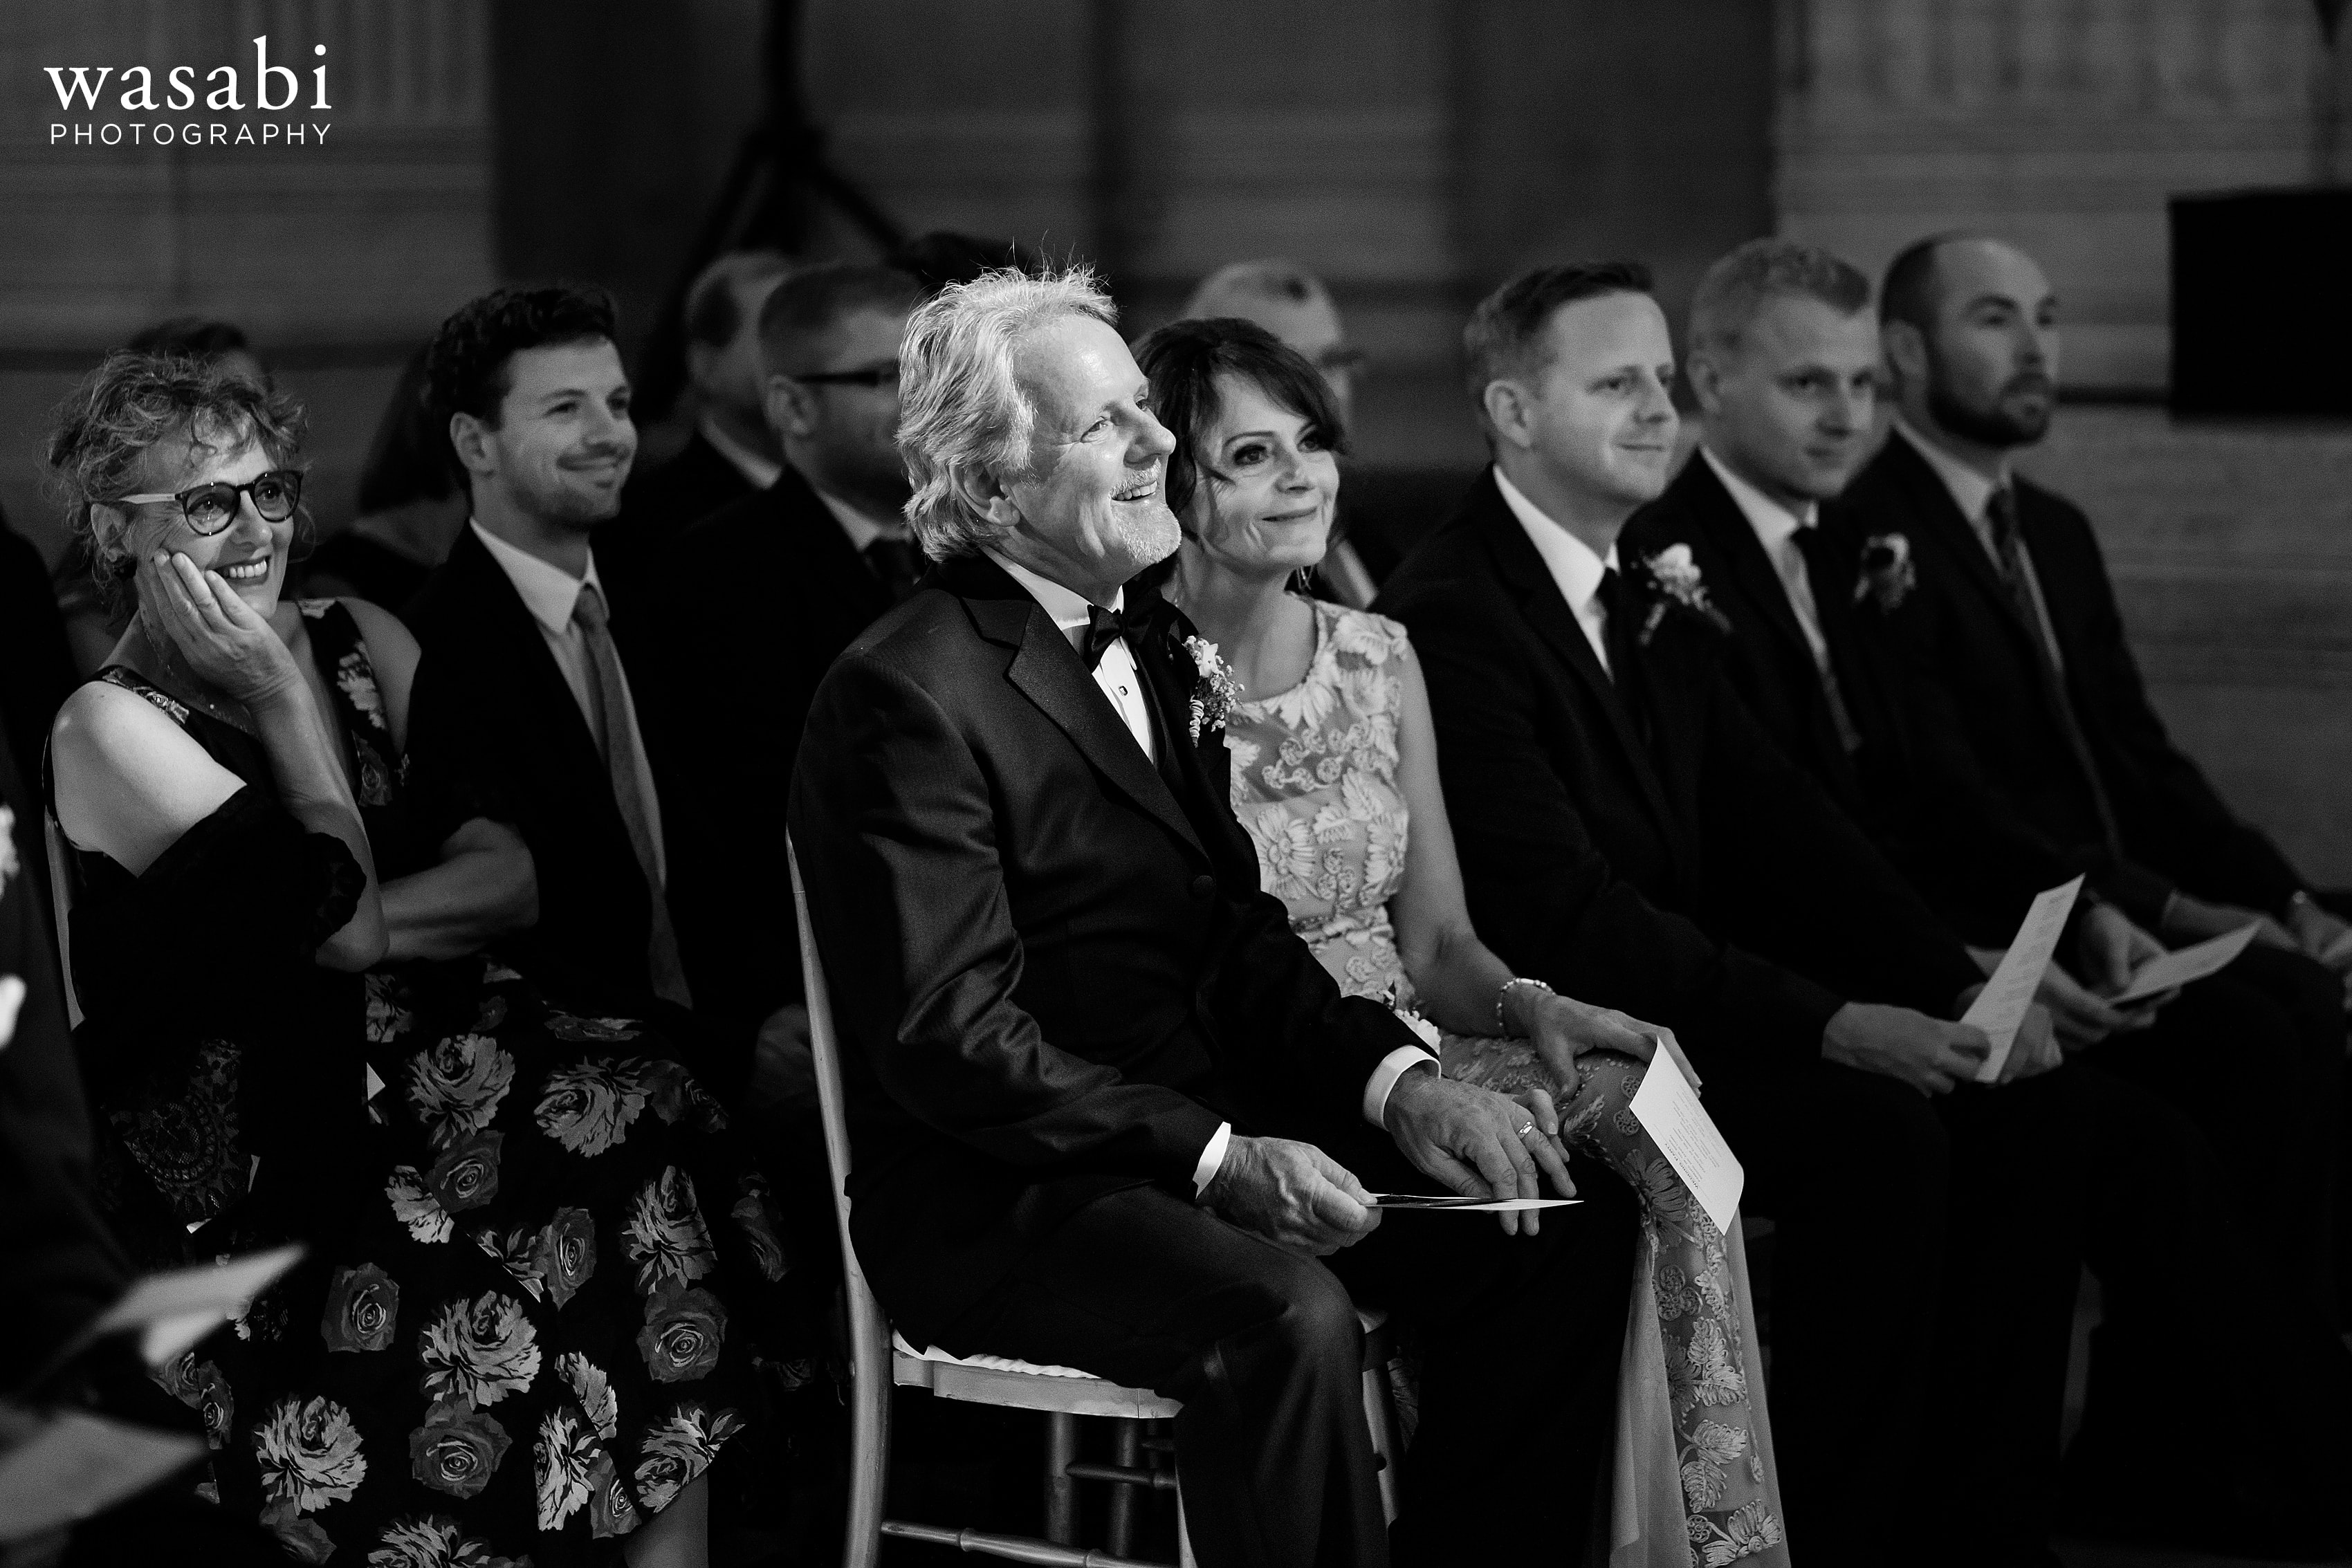 Parents watch wedding ceremony at Civic Opera House in Chicago